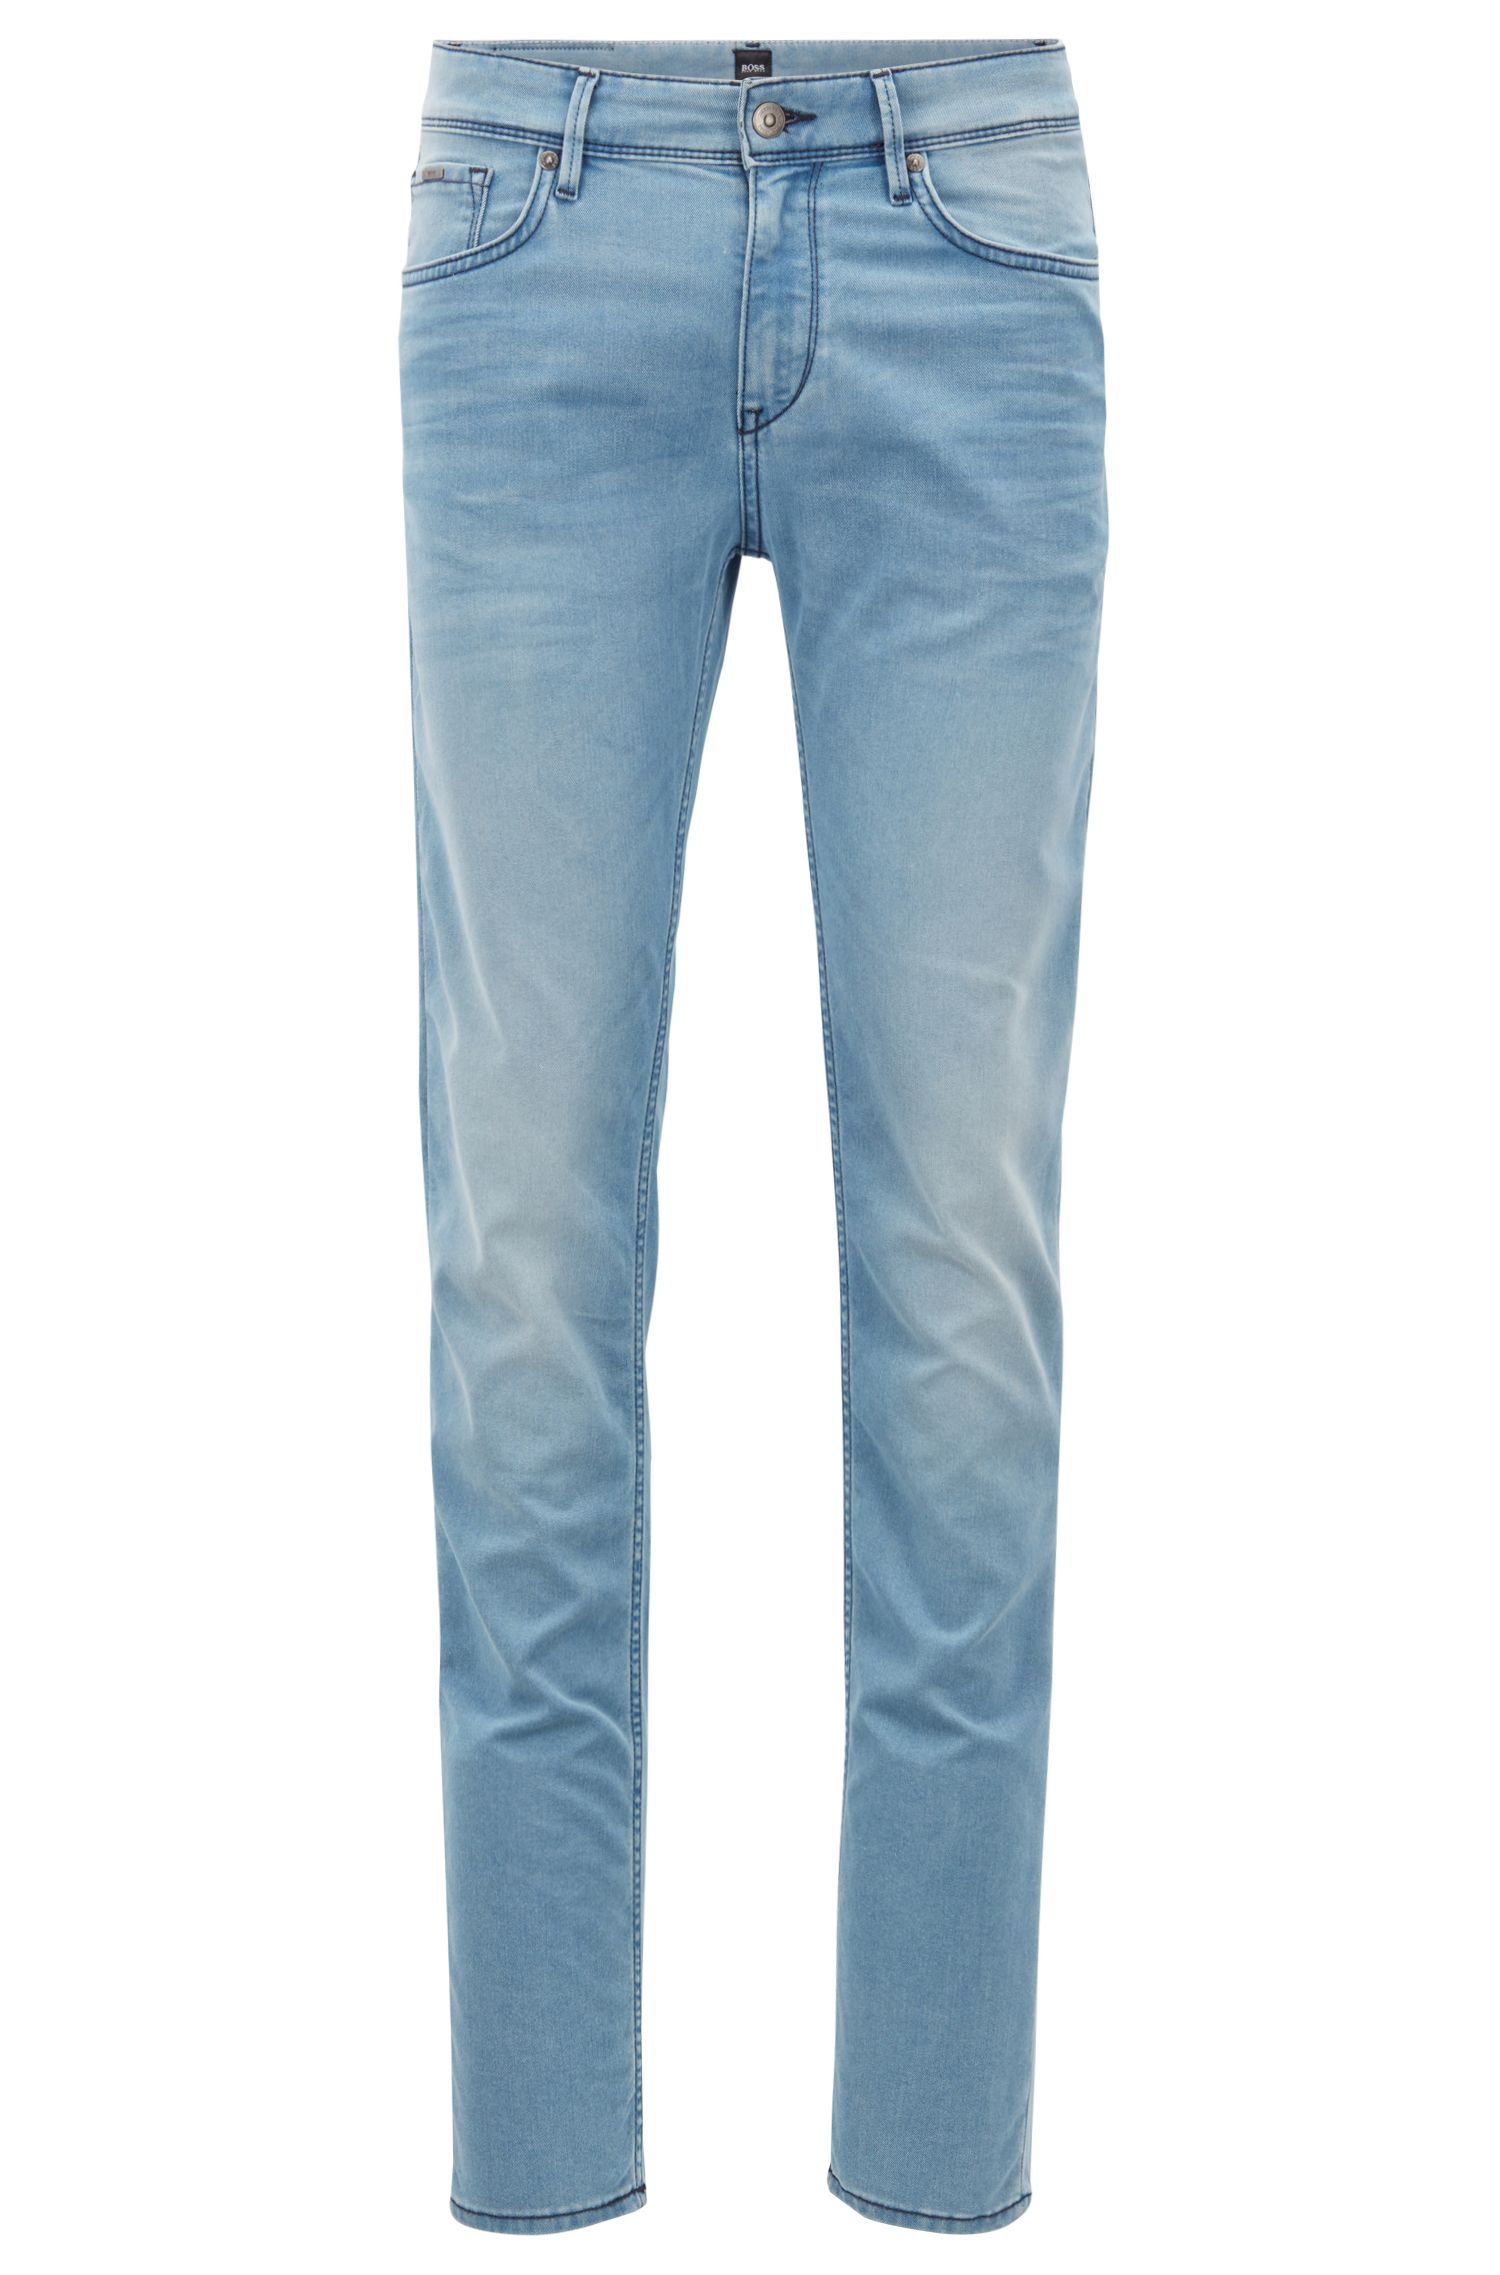 Extra-slim-fit jeans in Italian stretch denim